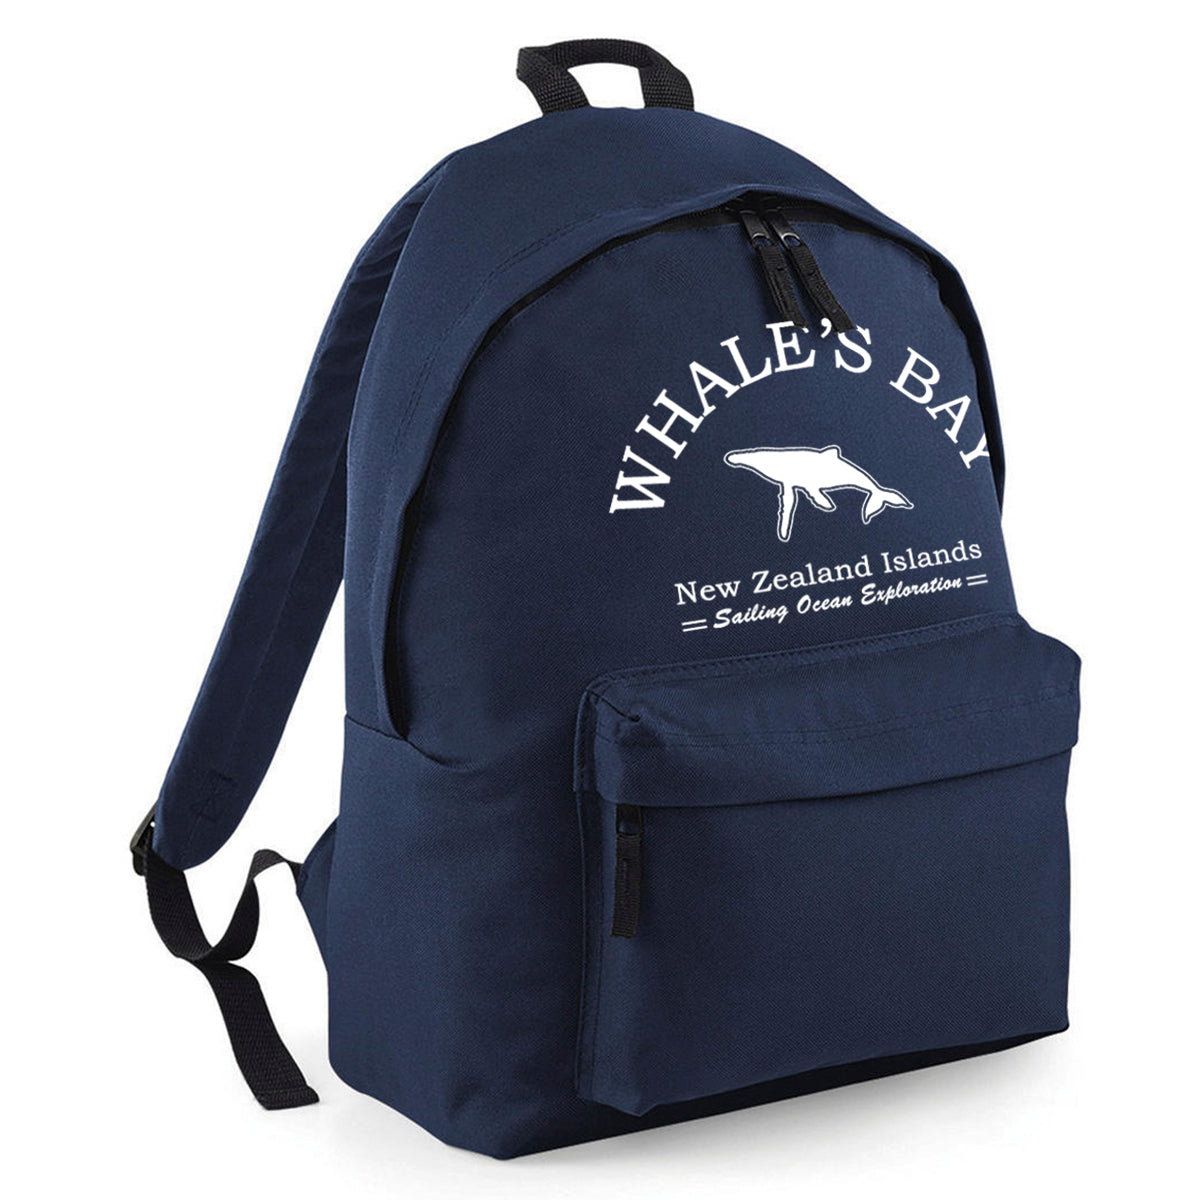 Zaino Whale's Bay mod. Citizen, blu